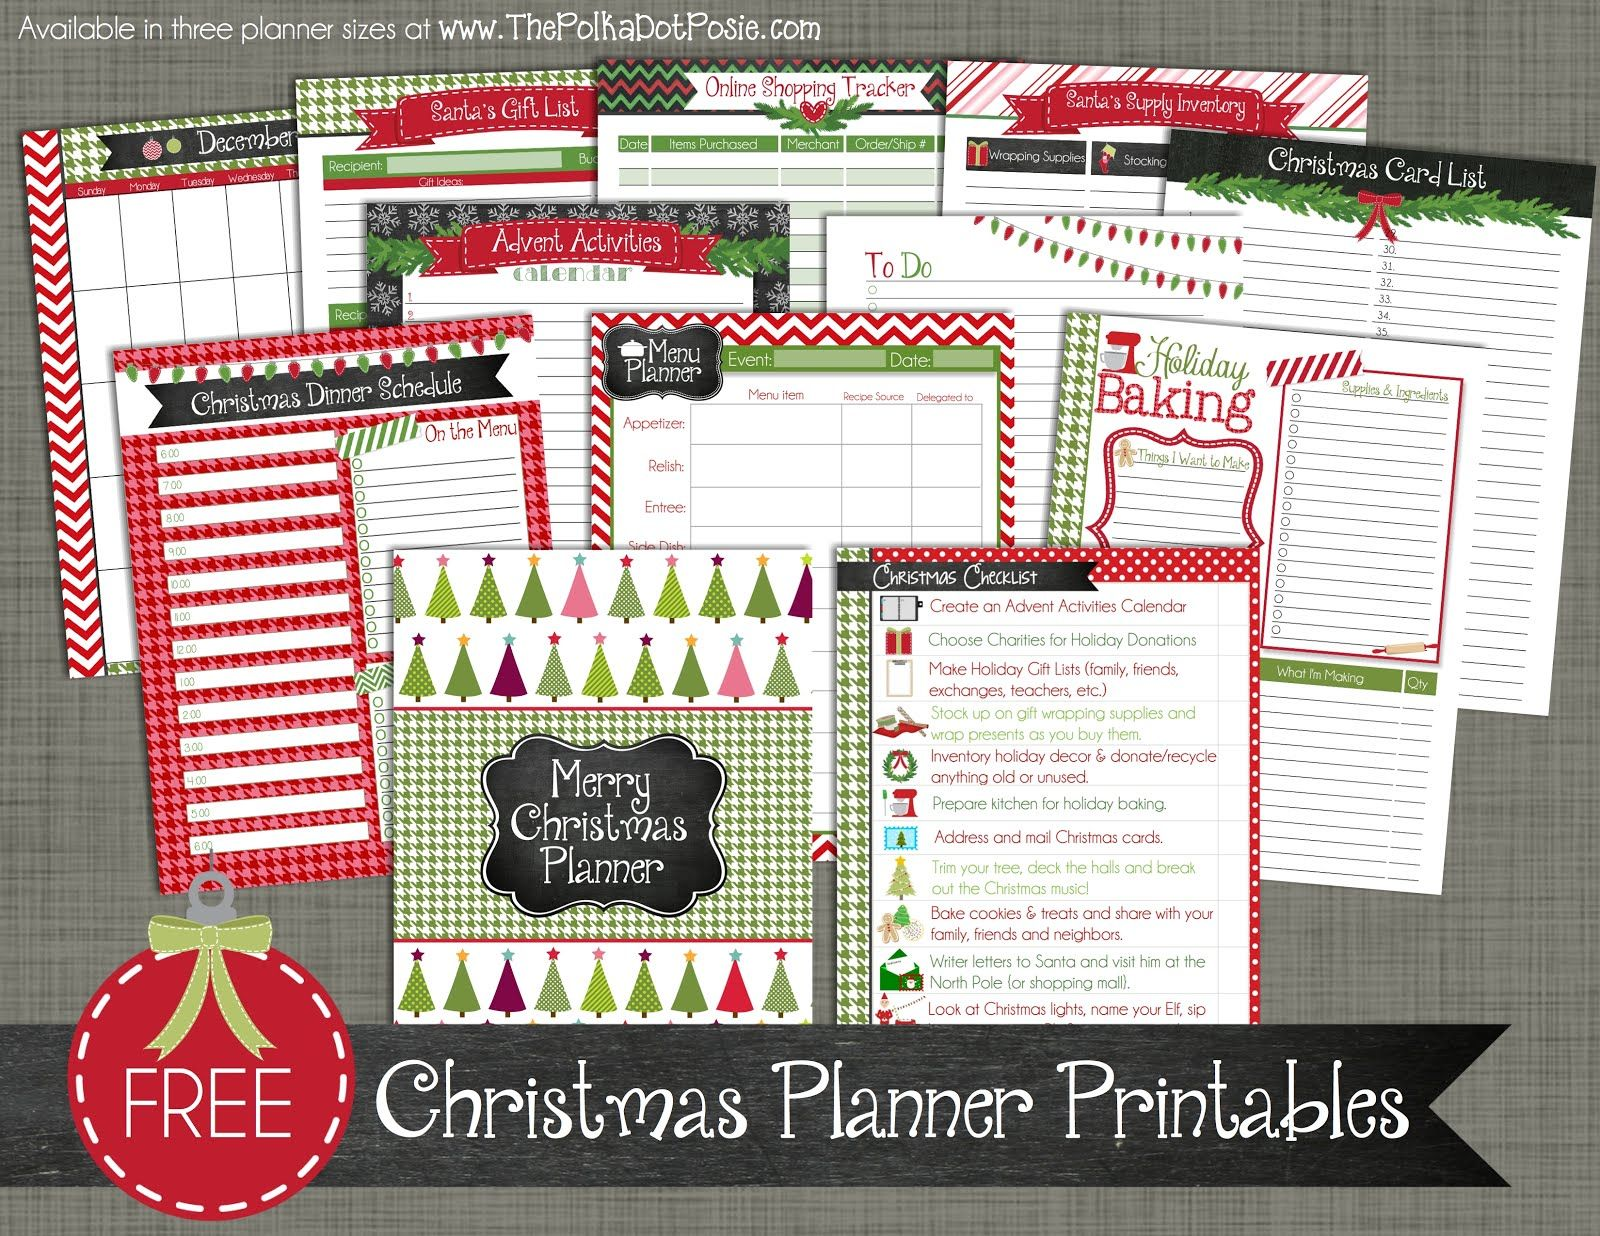 Download Our New Christmas Planner Pages And Get Organized For The Holidays